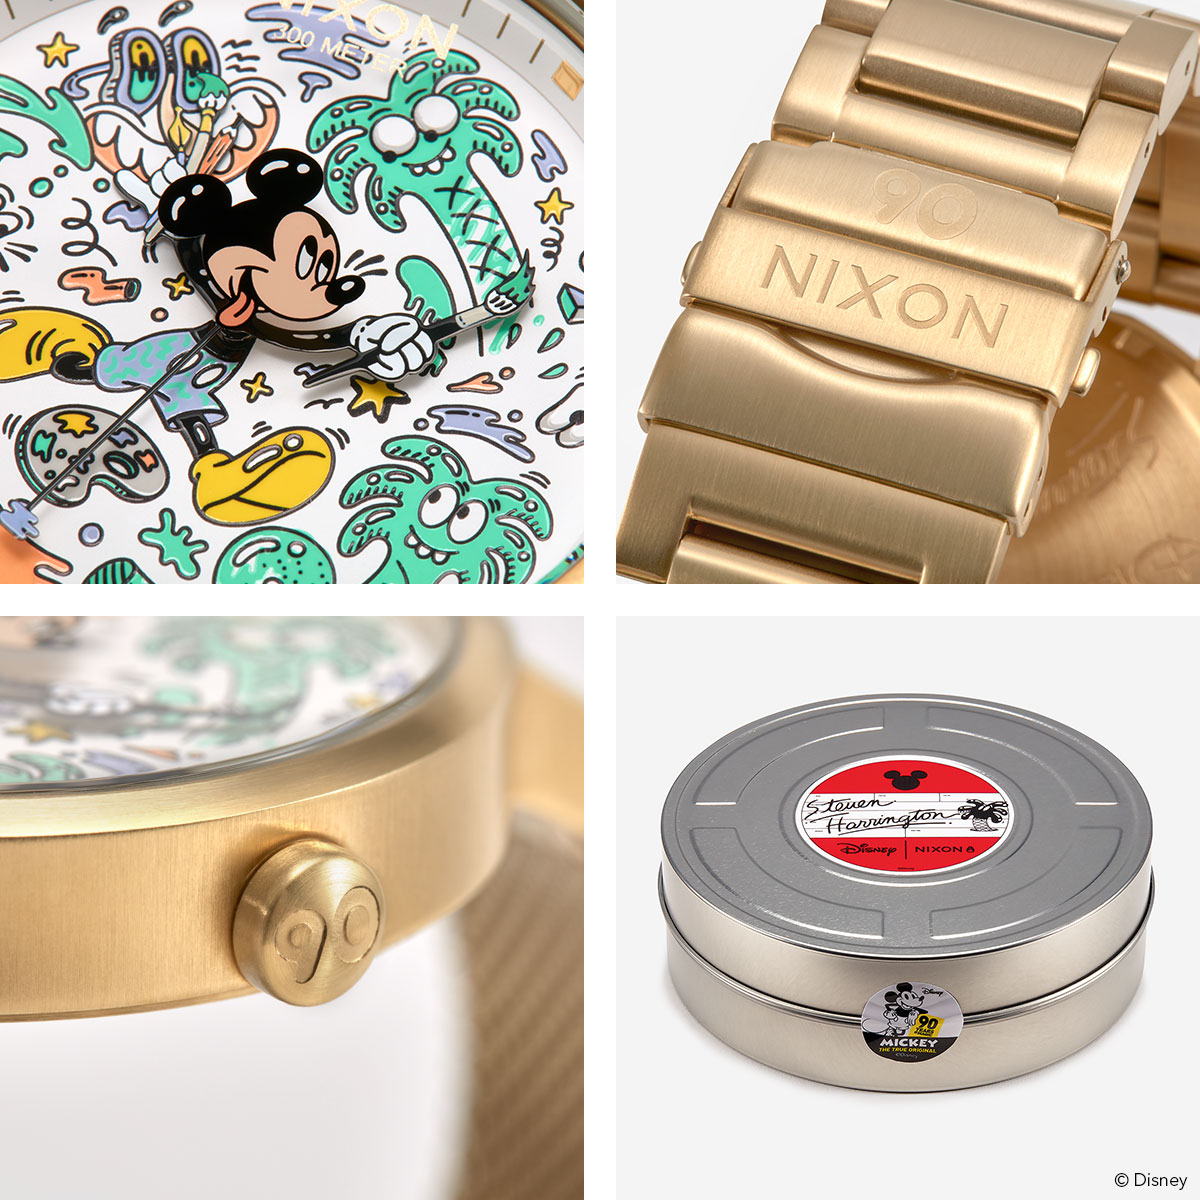 Nixon X Steven Harrington X Disney